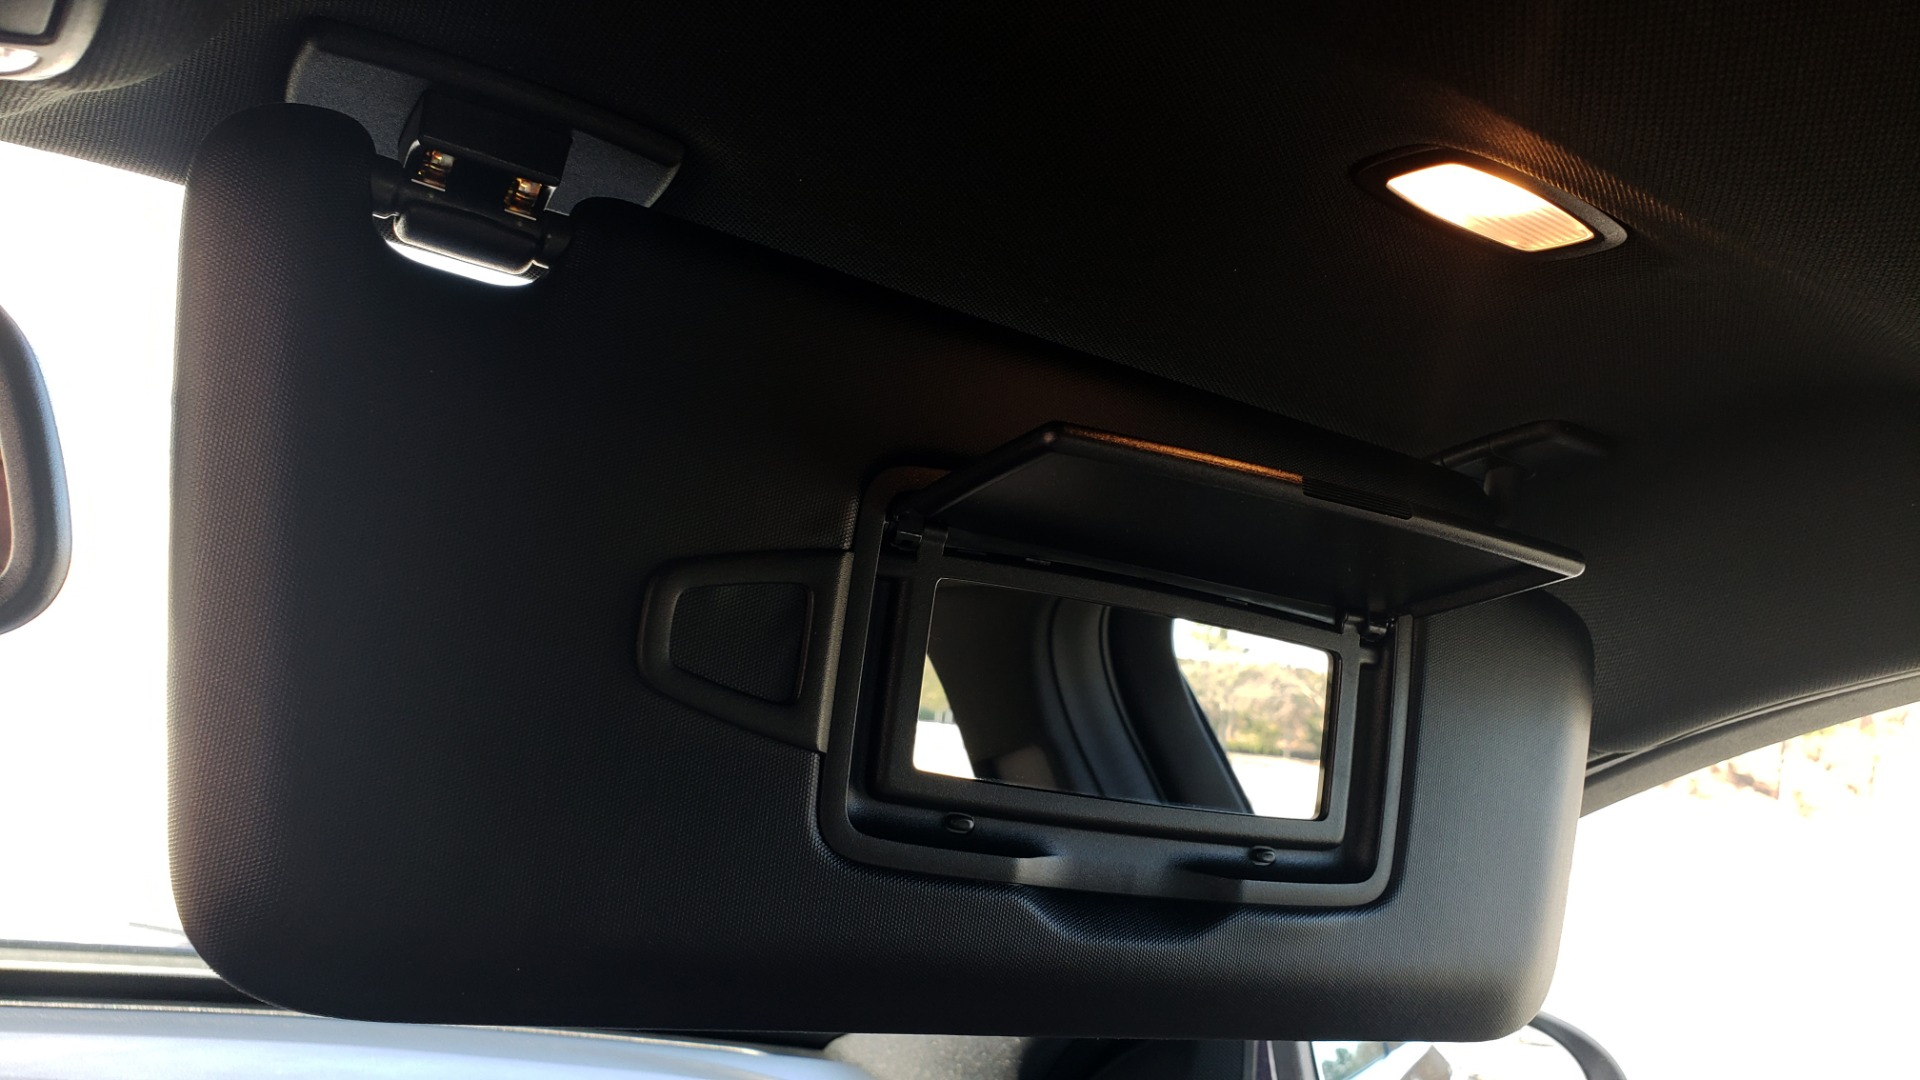 Used 2018 Mercedes-Benz C-CLASS C 300 PREMIUM / SUNROOF / BURMESTER / BSM / REARVIEW for sale $23,995 at Formula Imports in Charlotte NC 28227 45